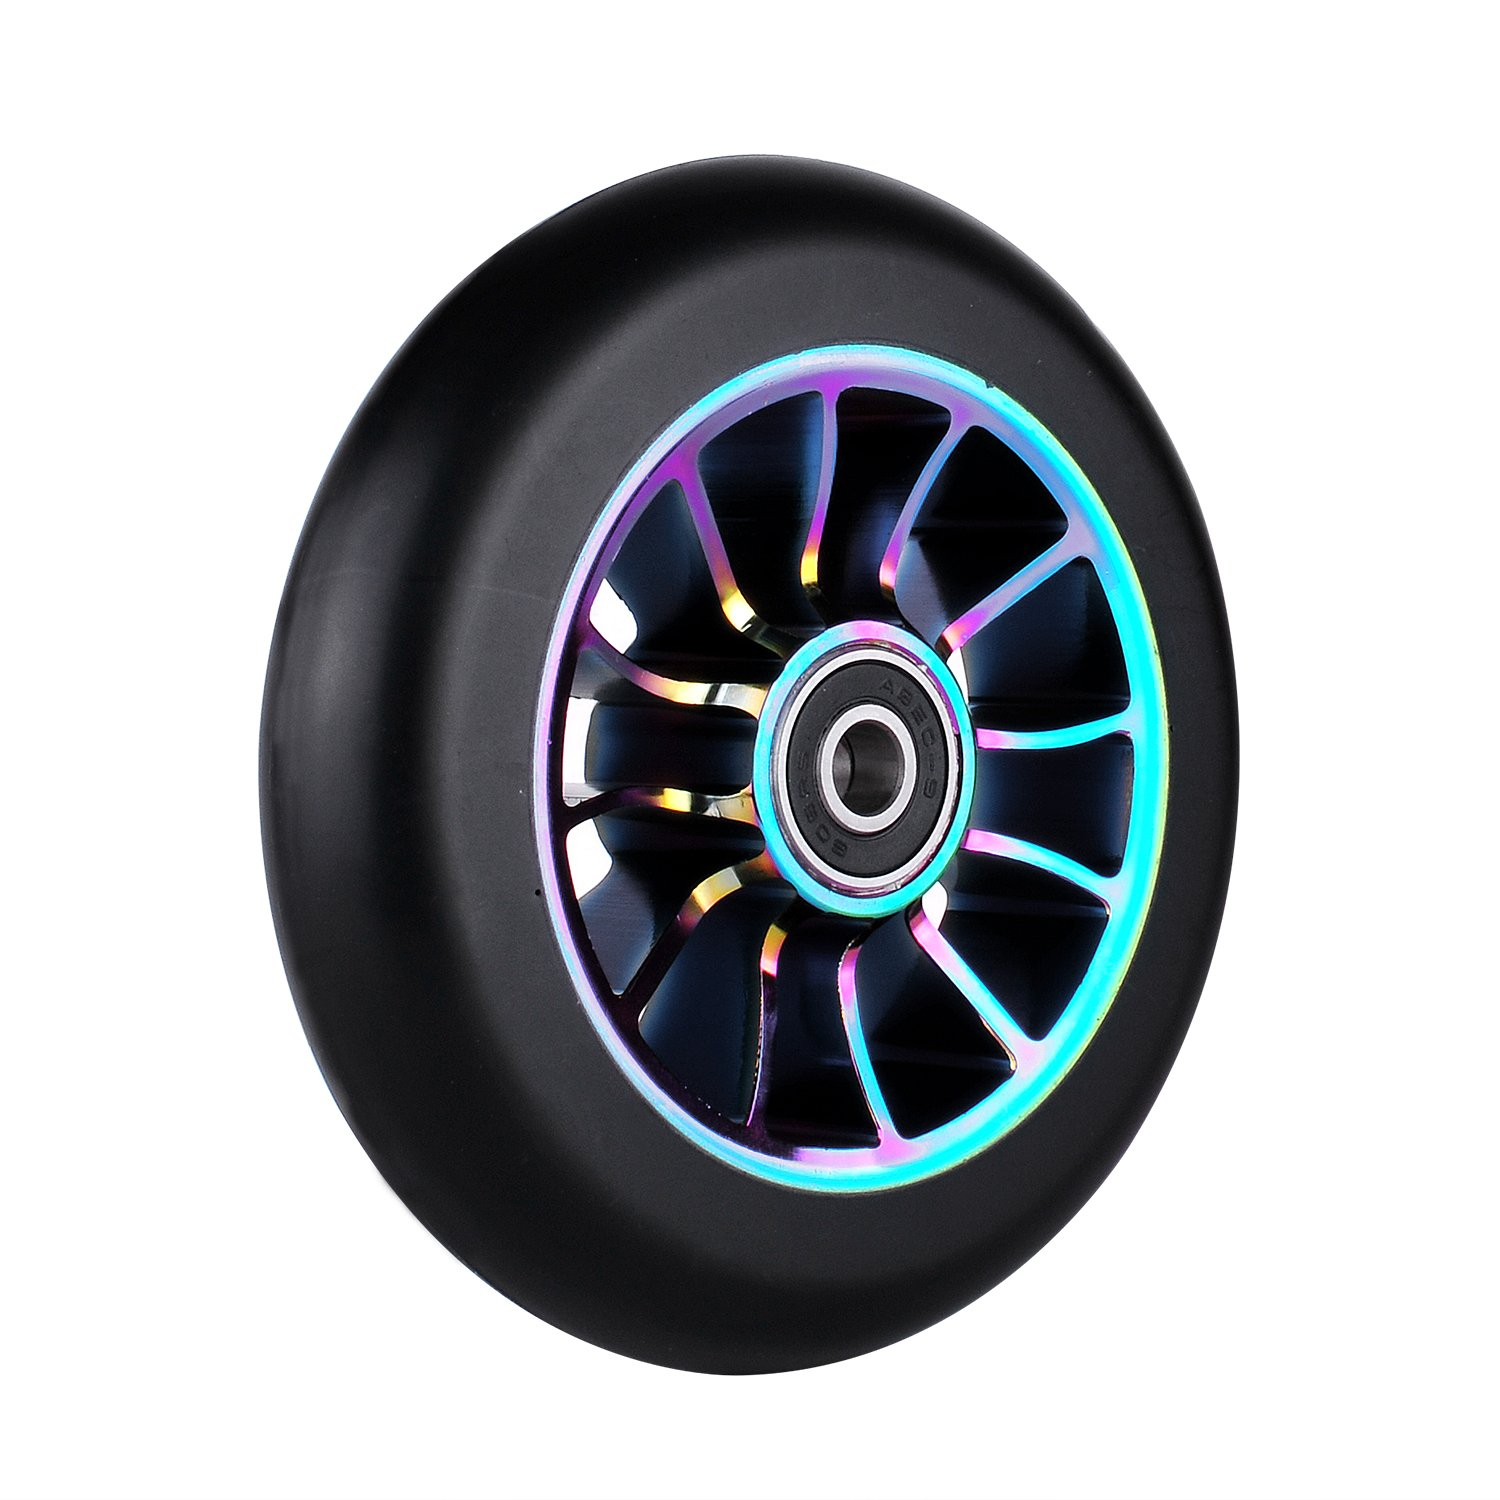 110mm Single 1 Pro Scooter Wheel with Abec 9 Bearings Fit for MGP/Razor/Lucky Pro Scooter -- 1PCS (Size:110mm)